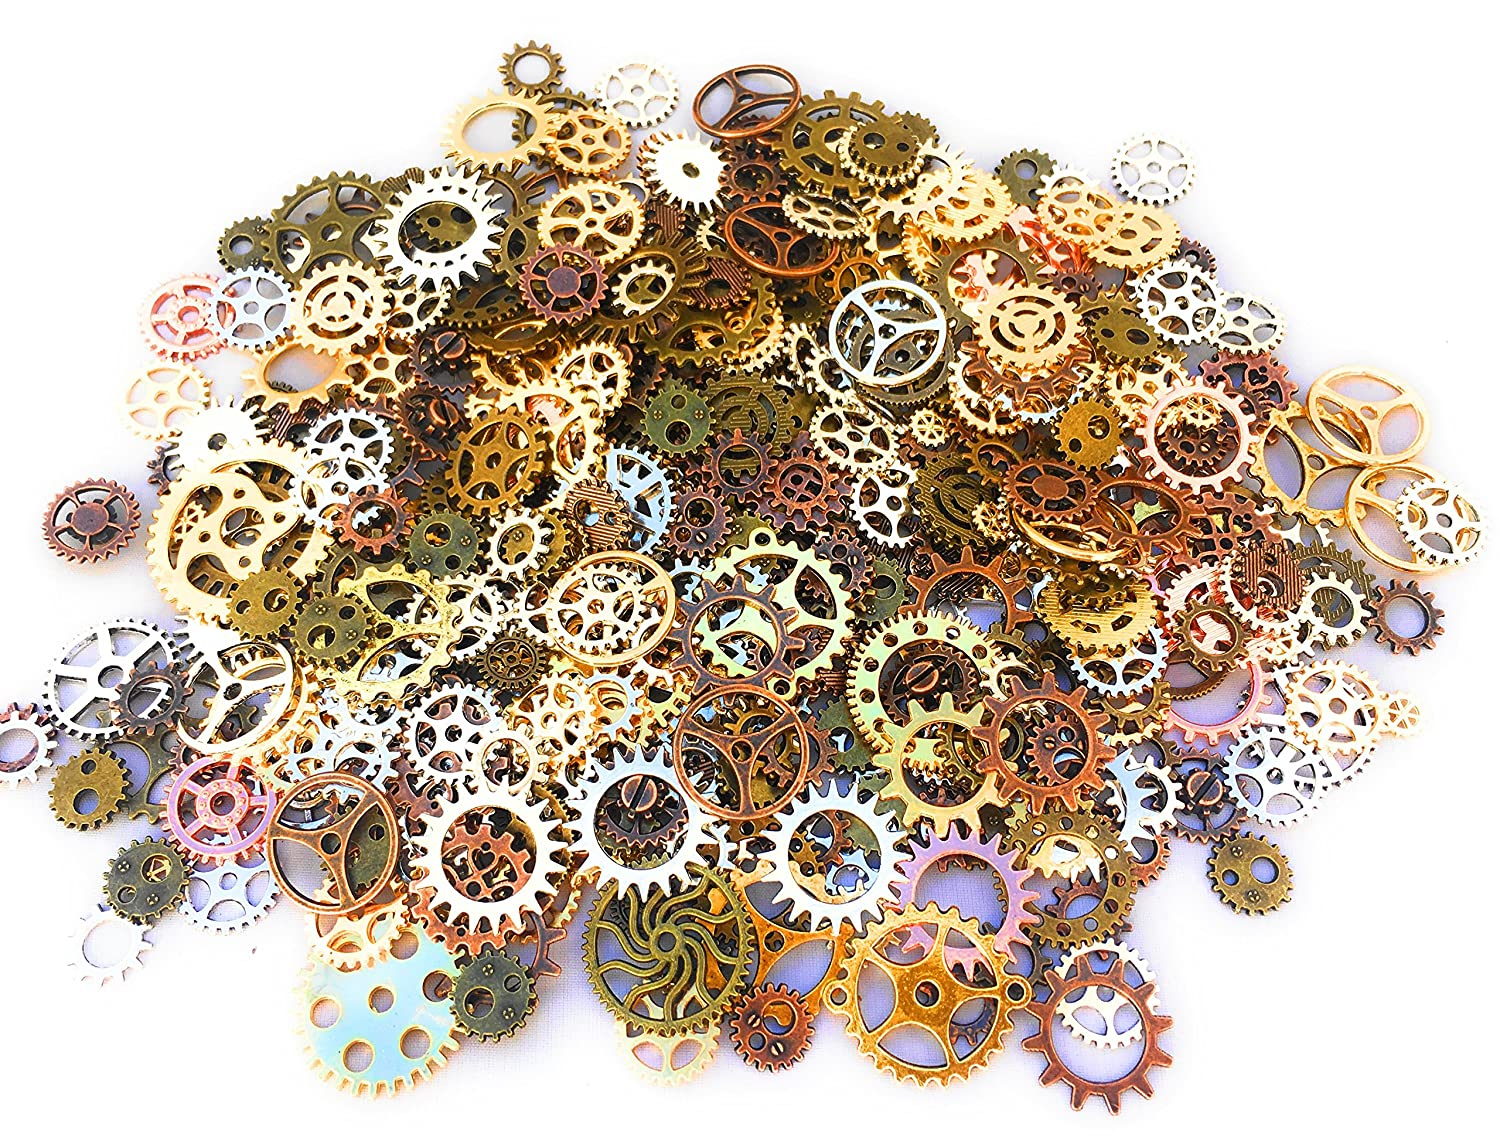 500 PCS Steampunk Gears Antique Assorted Mixed Color Vintage Silver Gold Bronze Jewelry Scrapbooking Charms Wheel Cog DIY ART Random Shapes and Sizes Made By Mello Products 4336848067